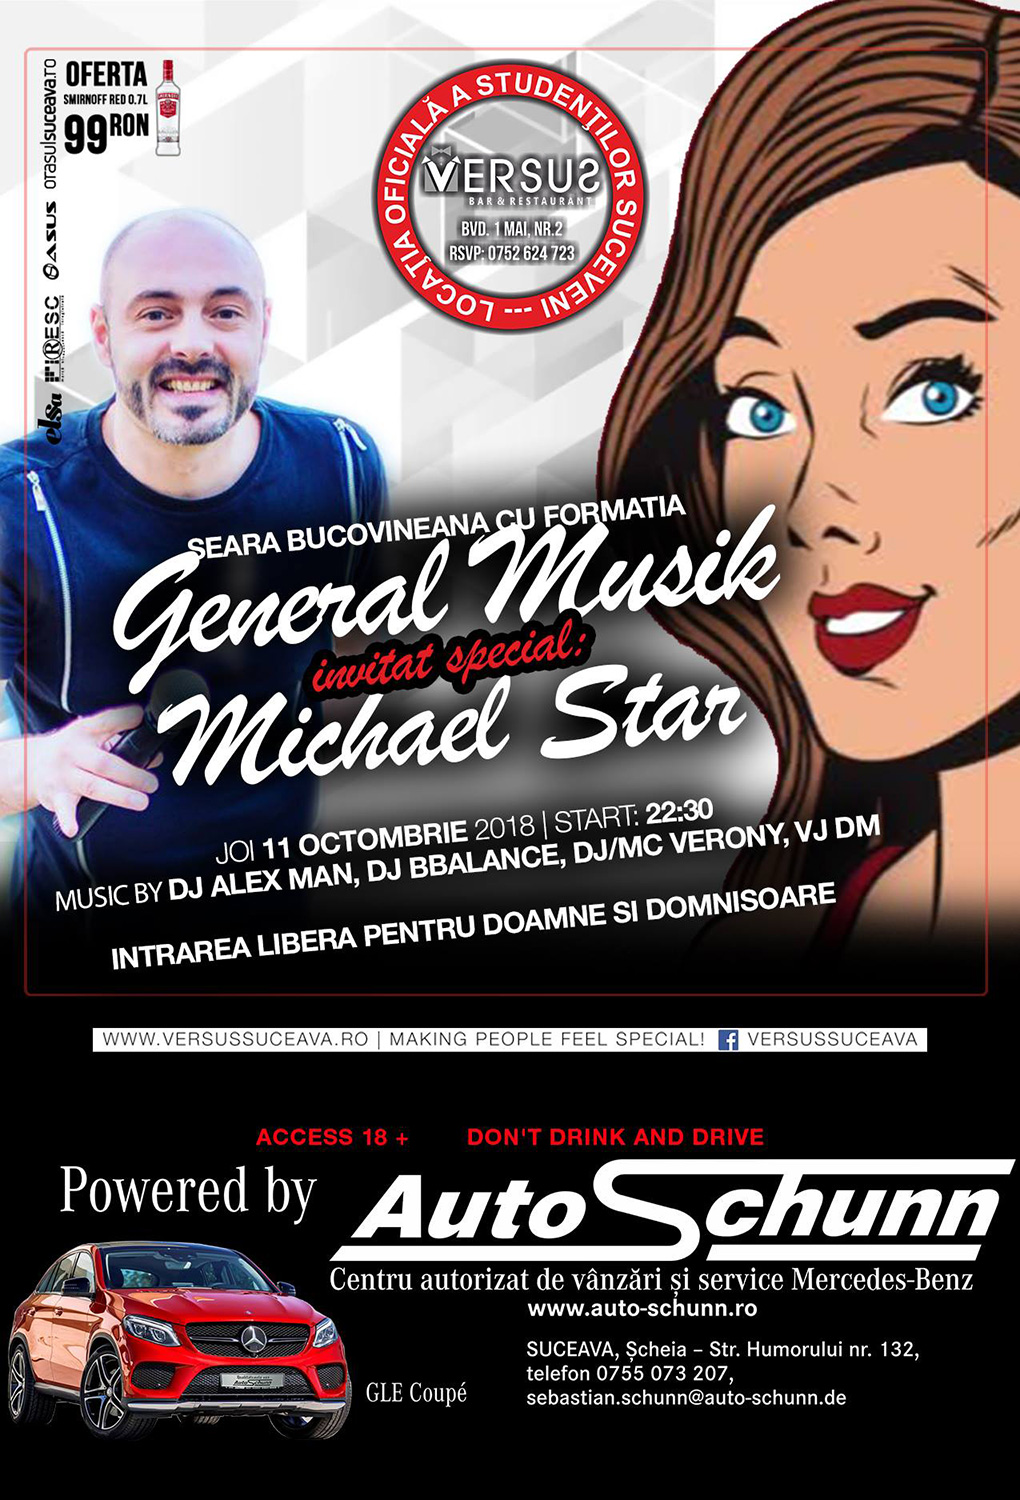 Formația General Musik și Michael Star